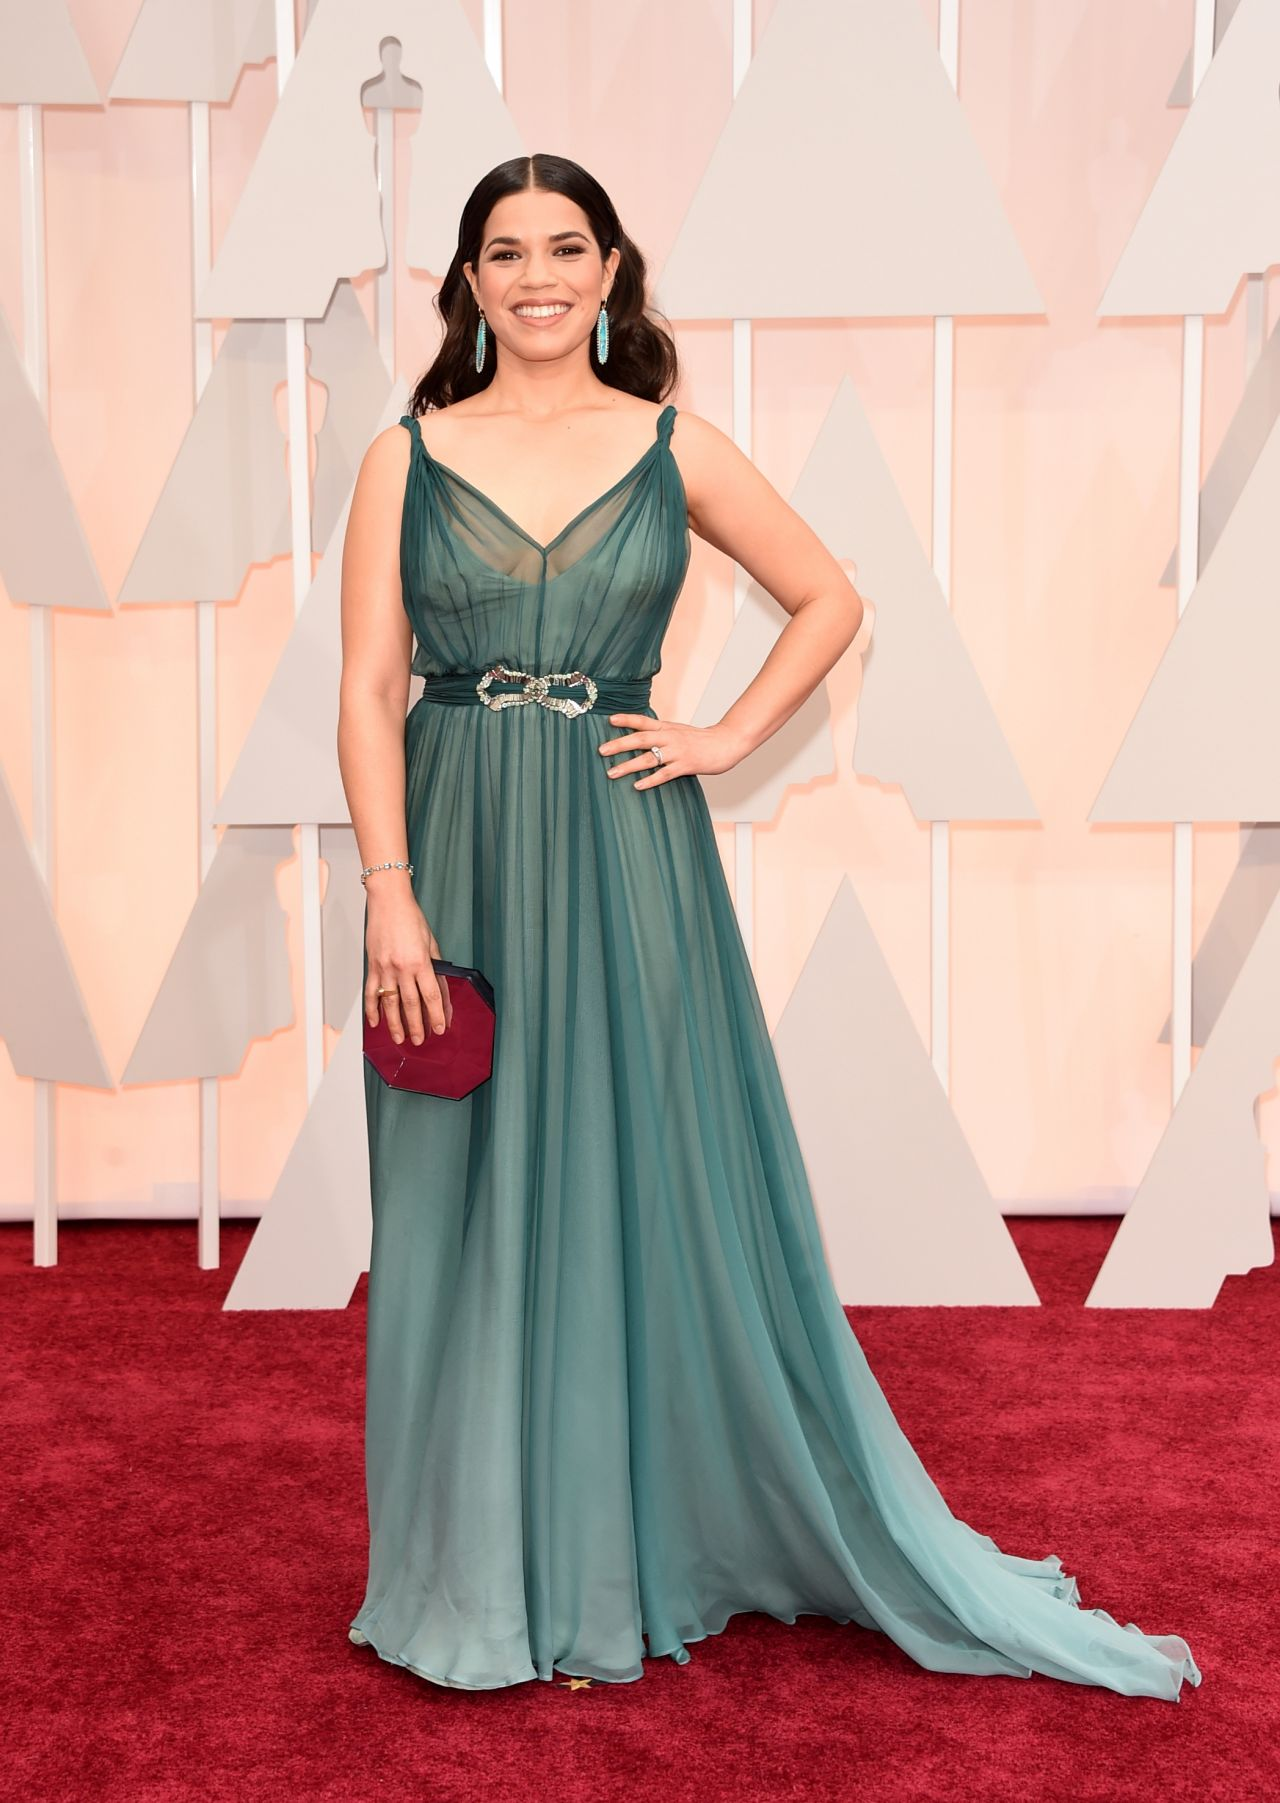 America ferrera 2015 oscars red carpet in hollywood - Red carpet oscar dresses ...